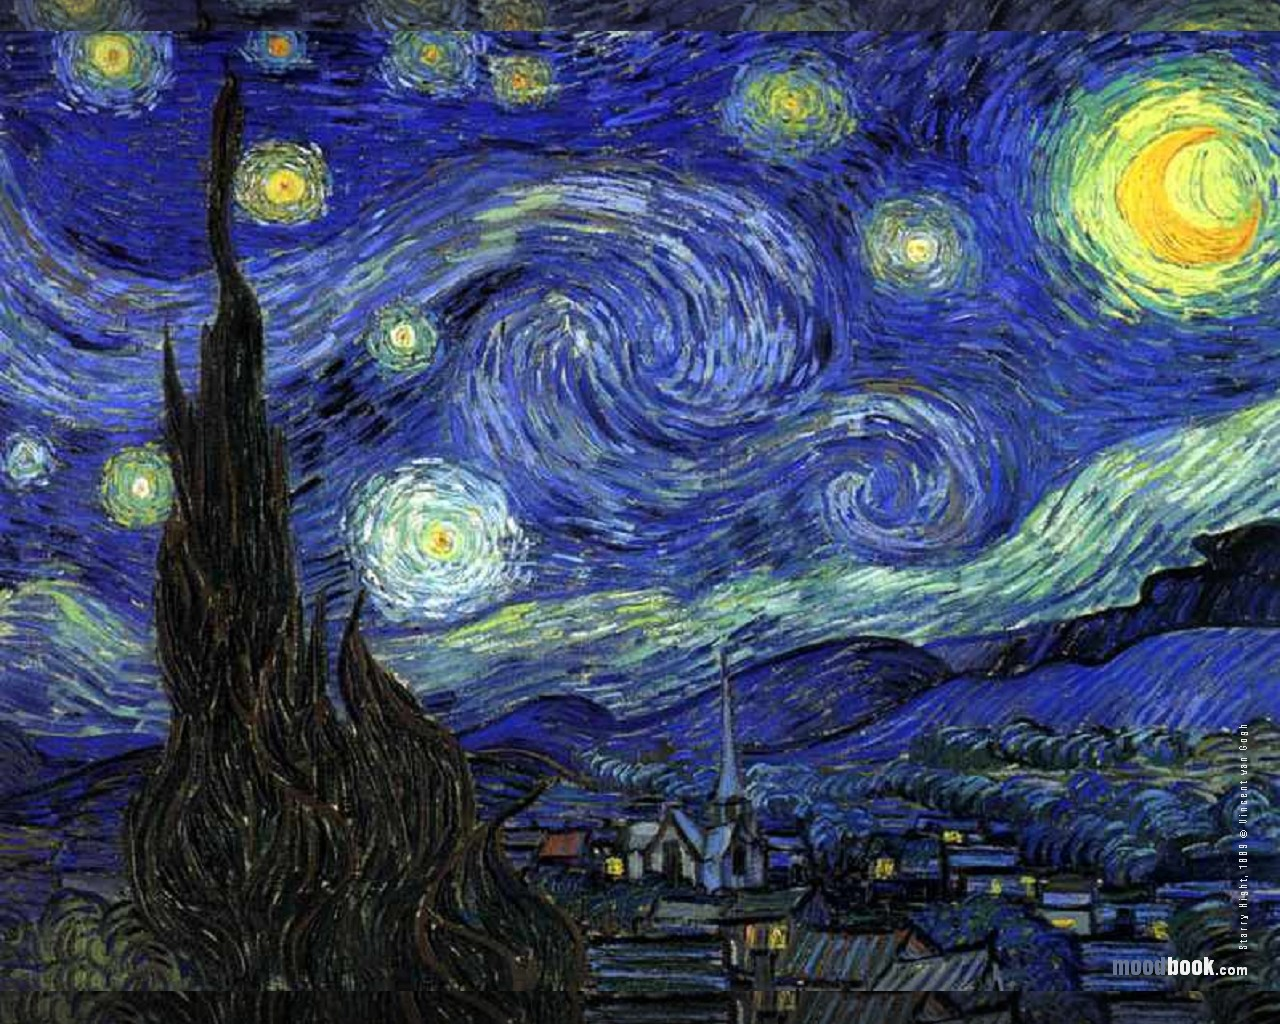 What Day Does School Start In New York By Marc Is Sitting A Lethal Activity The New York Times Any Given Day The Starry Night By Vincent Van Gogh